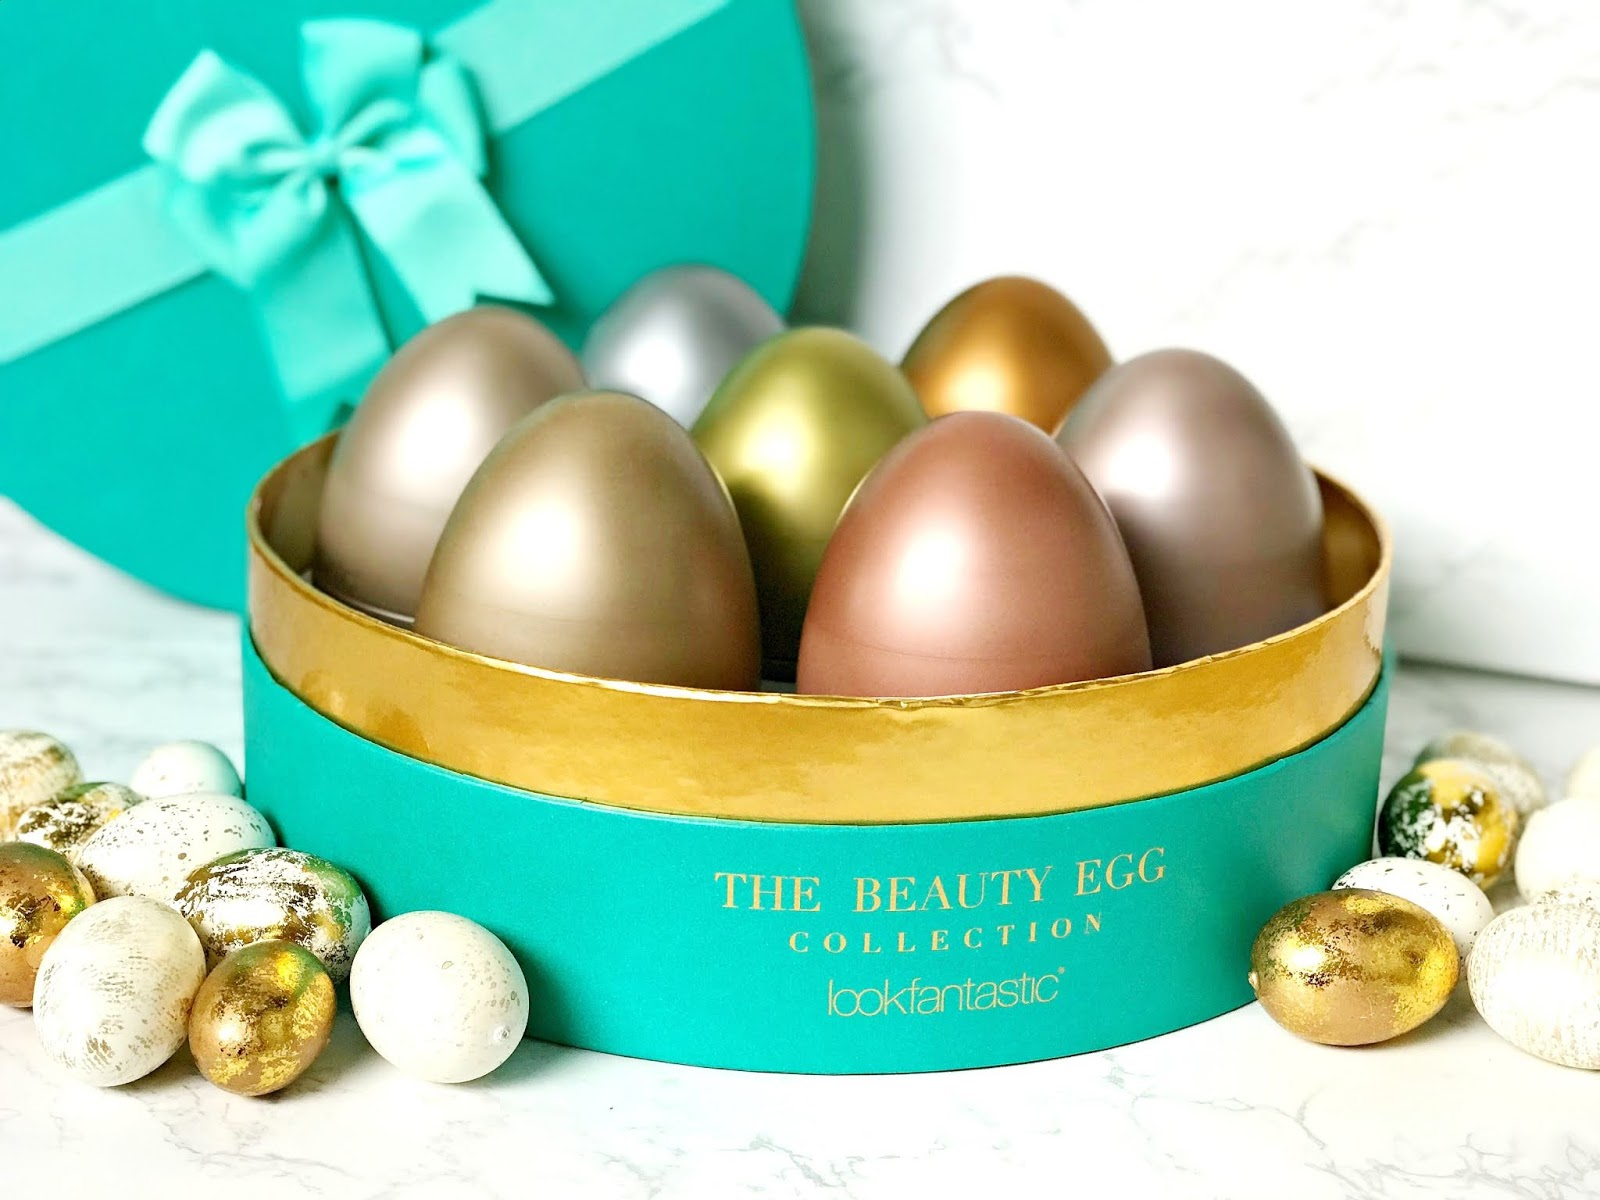 Look Fantastic Limited Edition 2019 Beauty Egg Collection Contents & Review